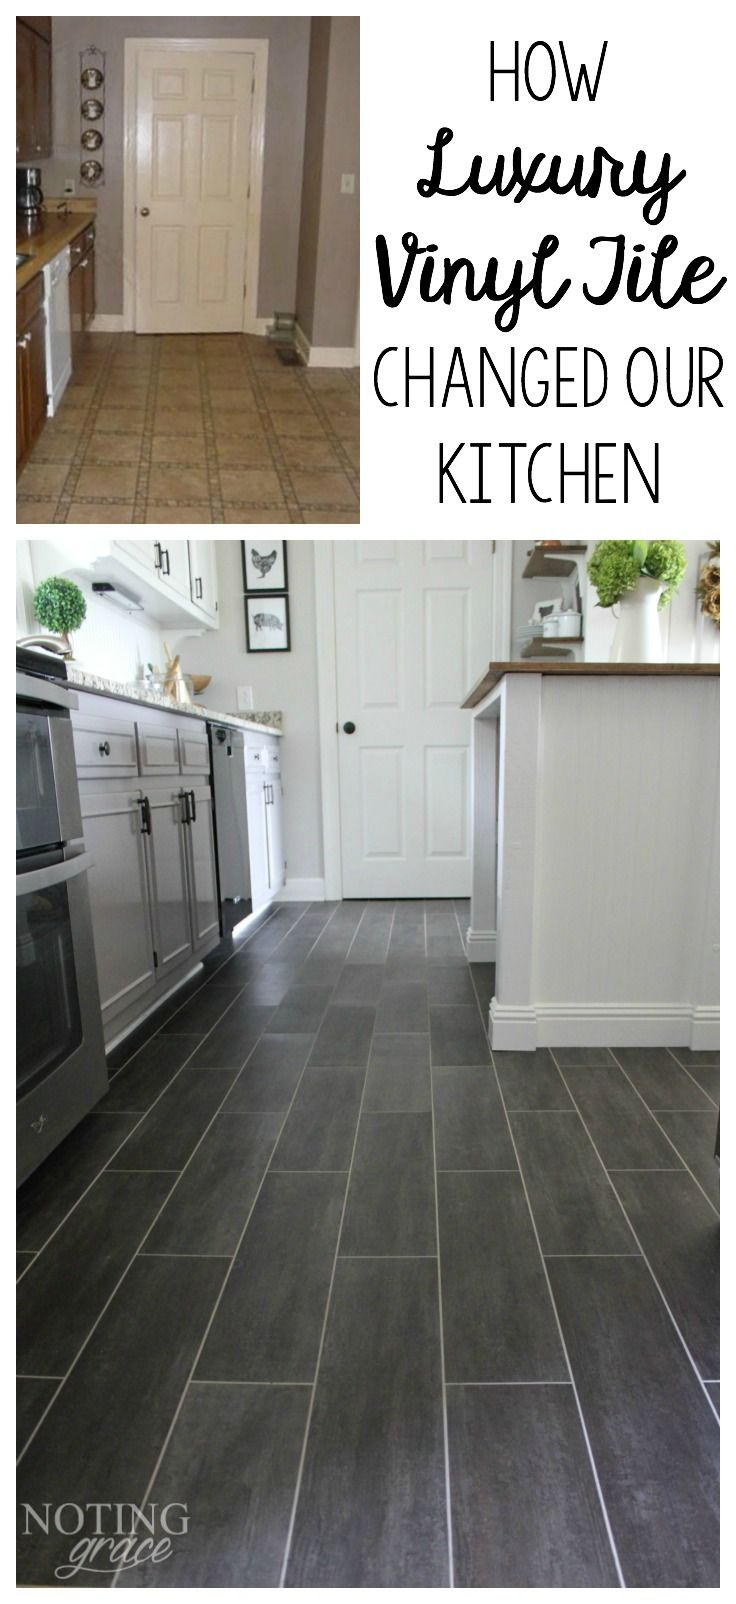 Vinyl Kitchen Floor Tiles